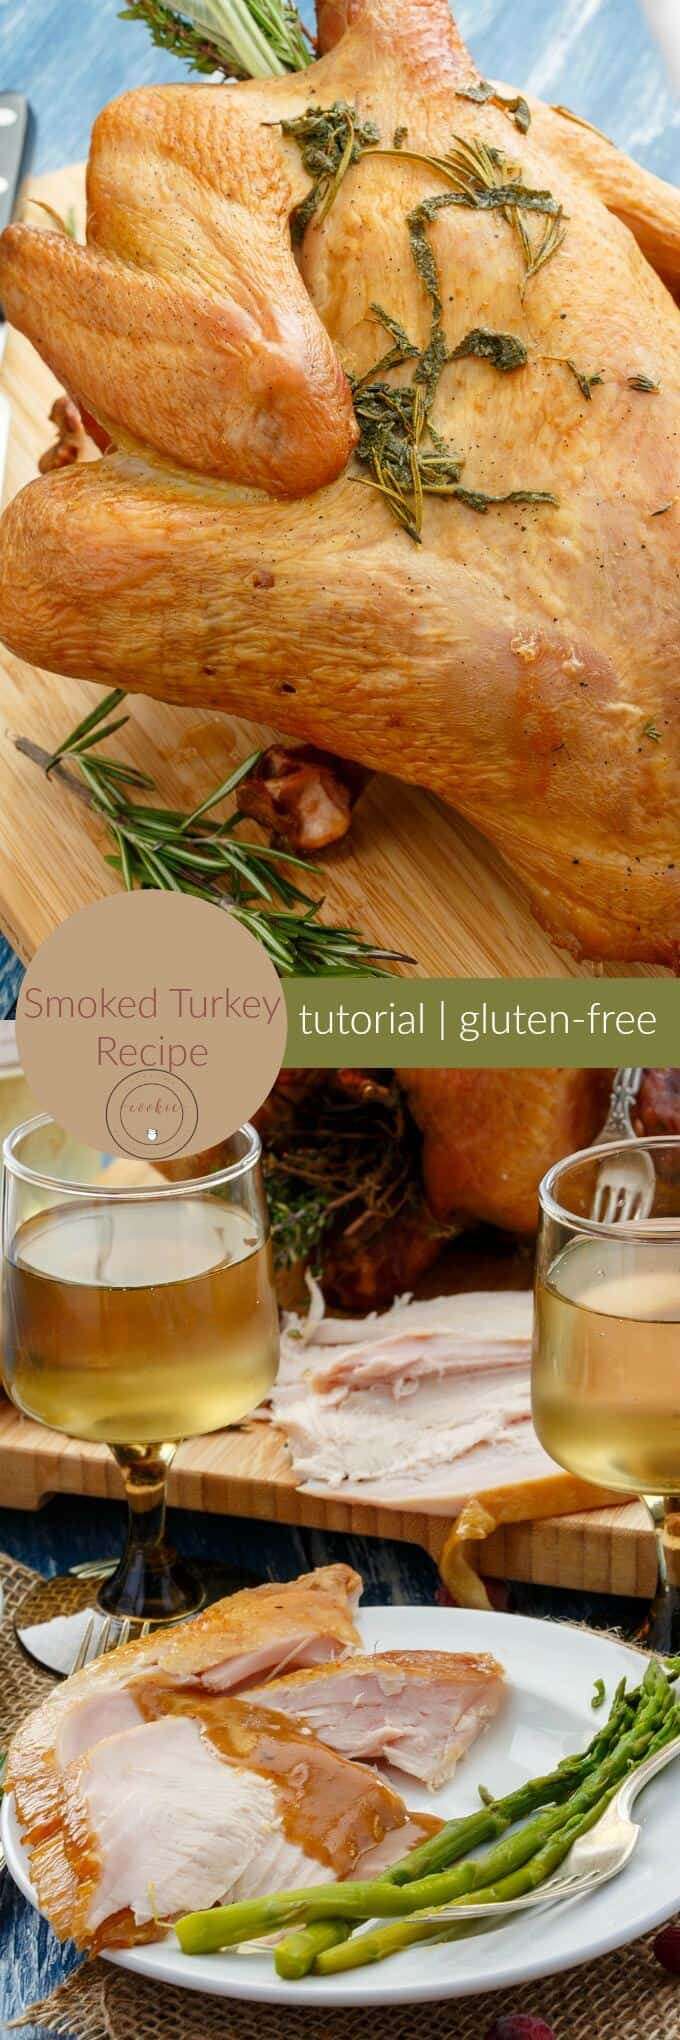 Smoked Turkey Recipe (How to Smoke a Turkey)